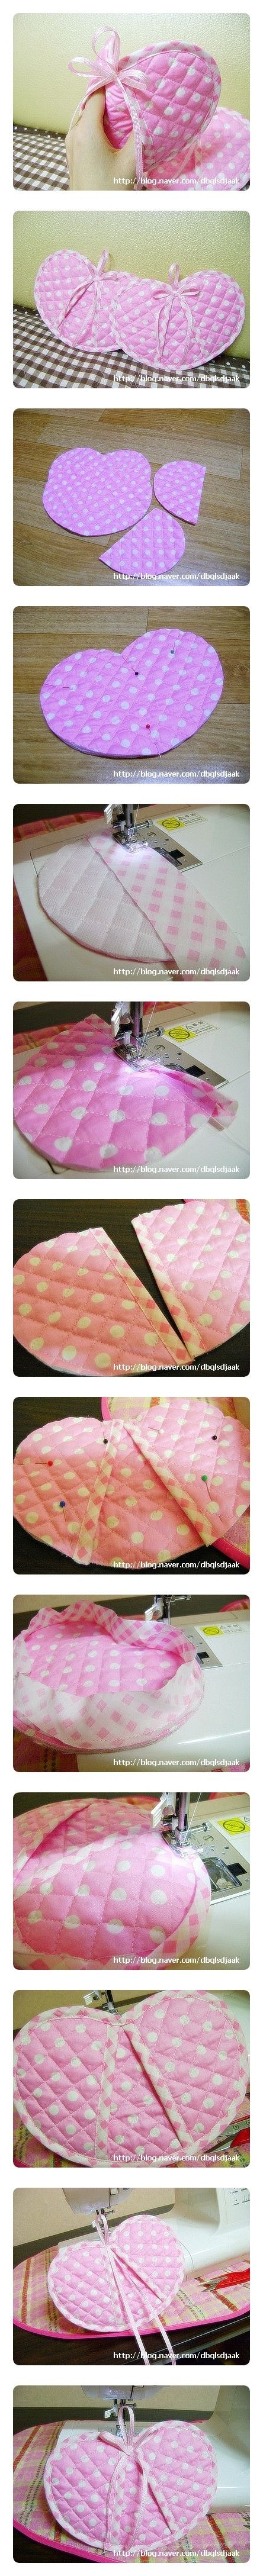 Cute Heart-shaped Pot Holders. Every girl should have a nice set of pot holders…